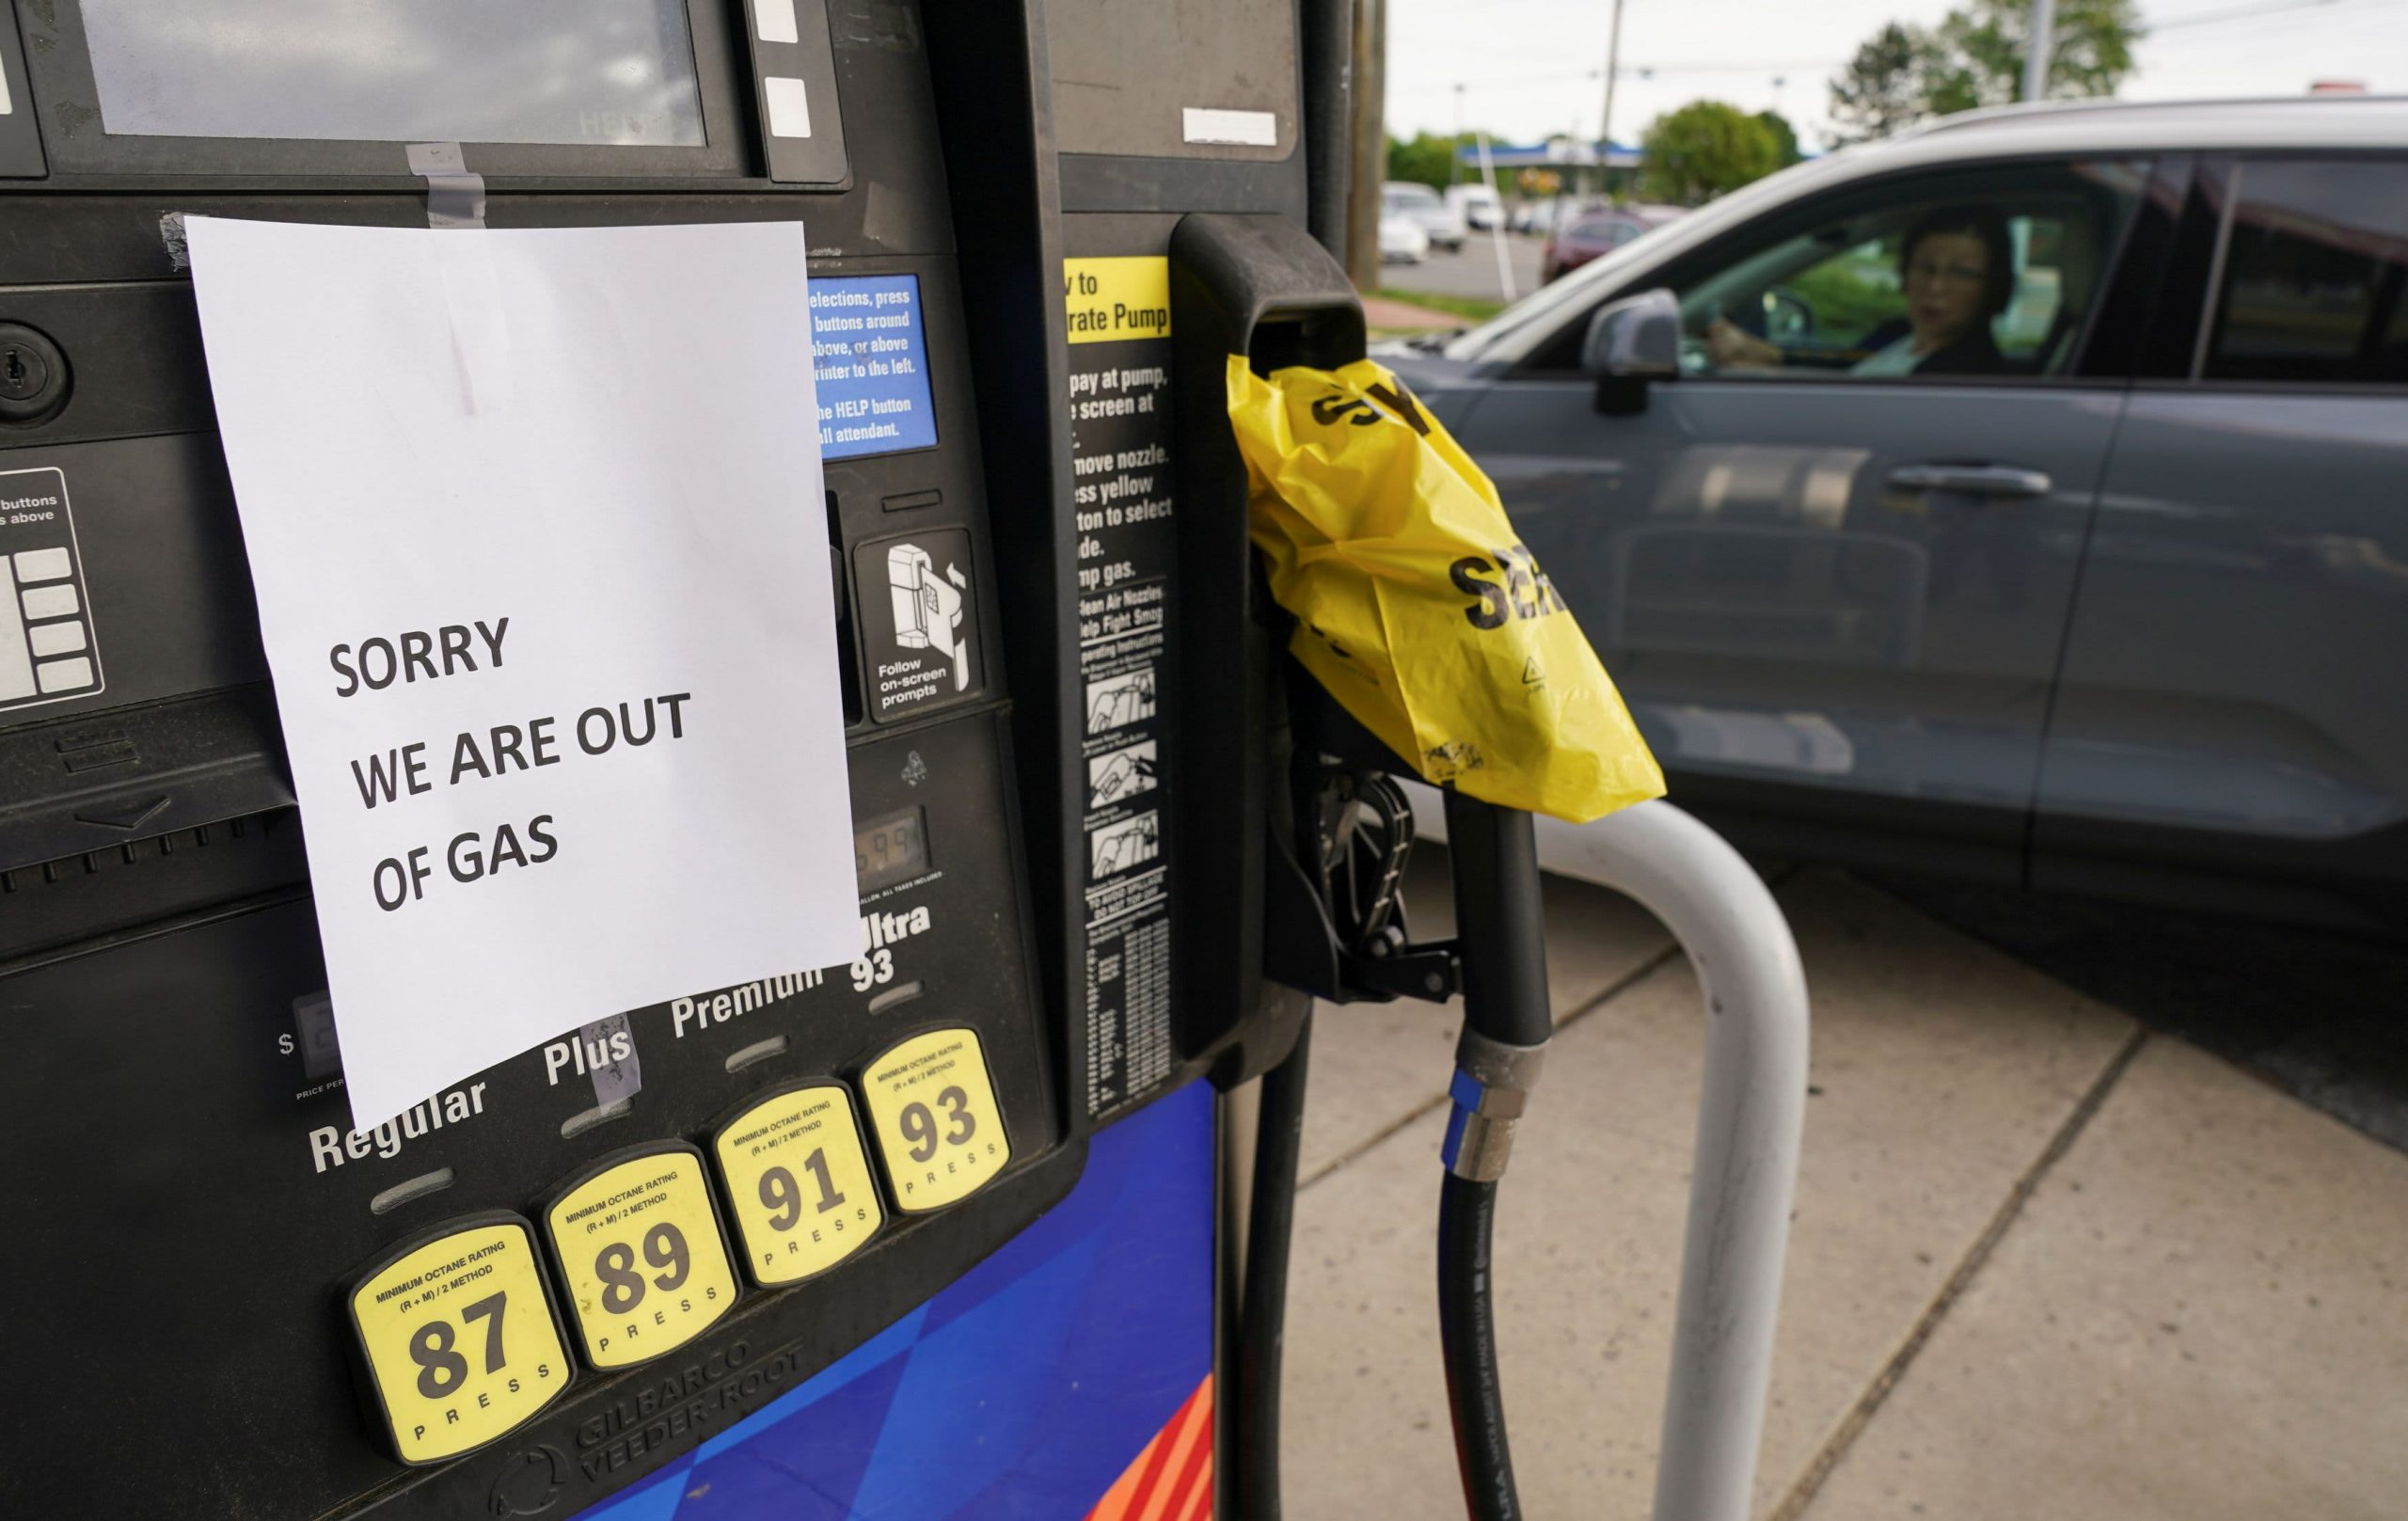 GasBuddy tops Apple App store amid gas shortages from Colonial Pipeline shutdown